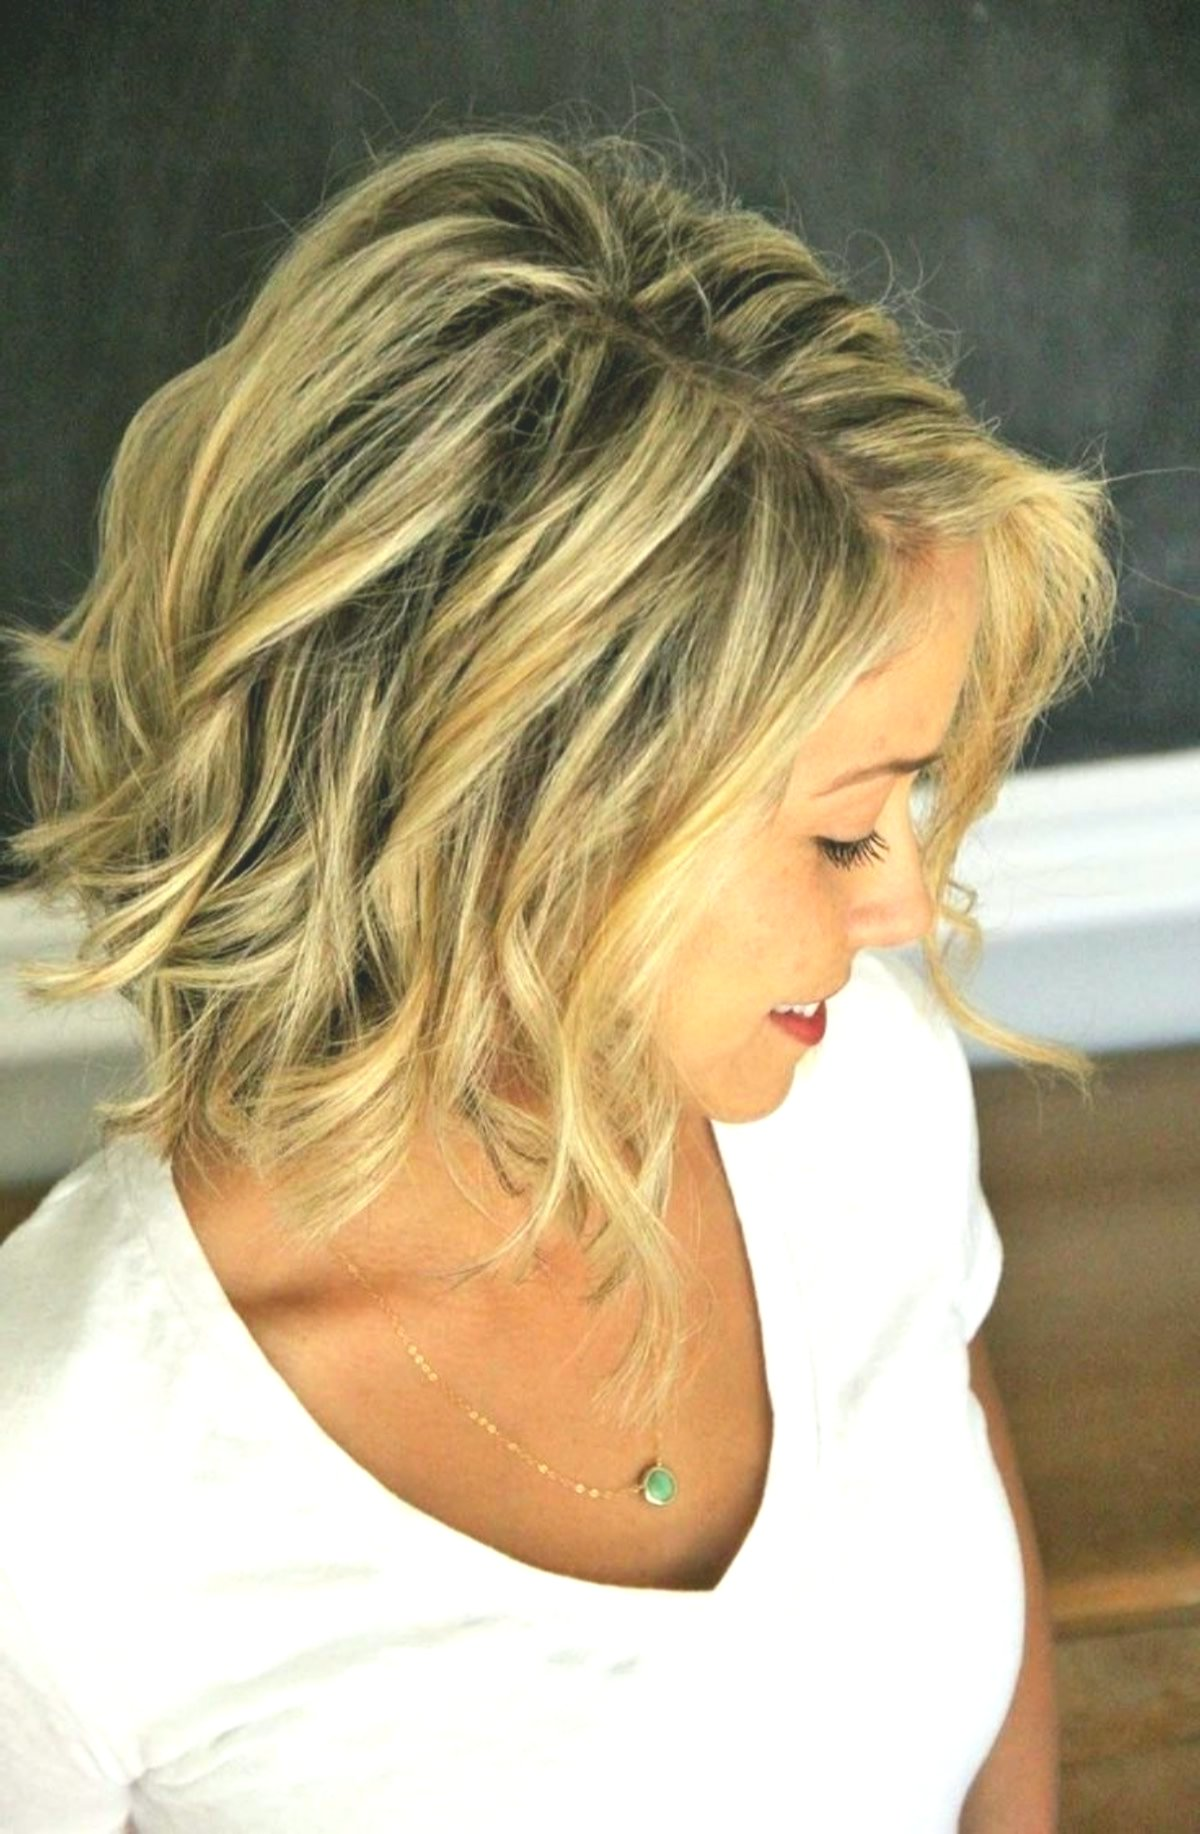 Inspirational Curly Haircut Portrait - Awesome Curls Haircut Photo